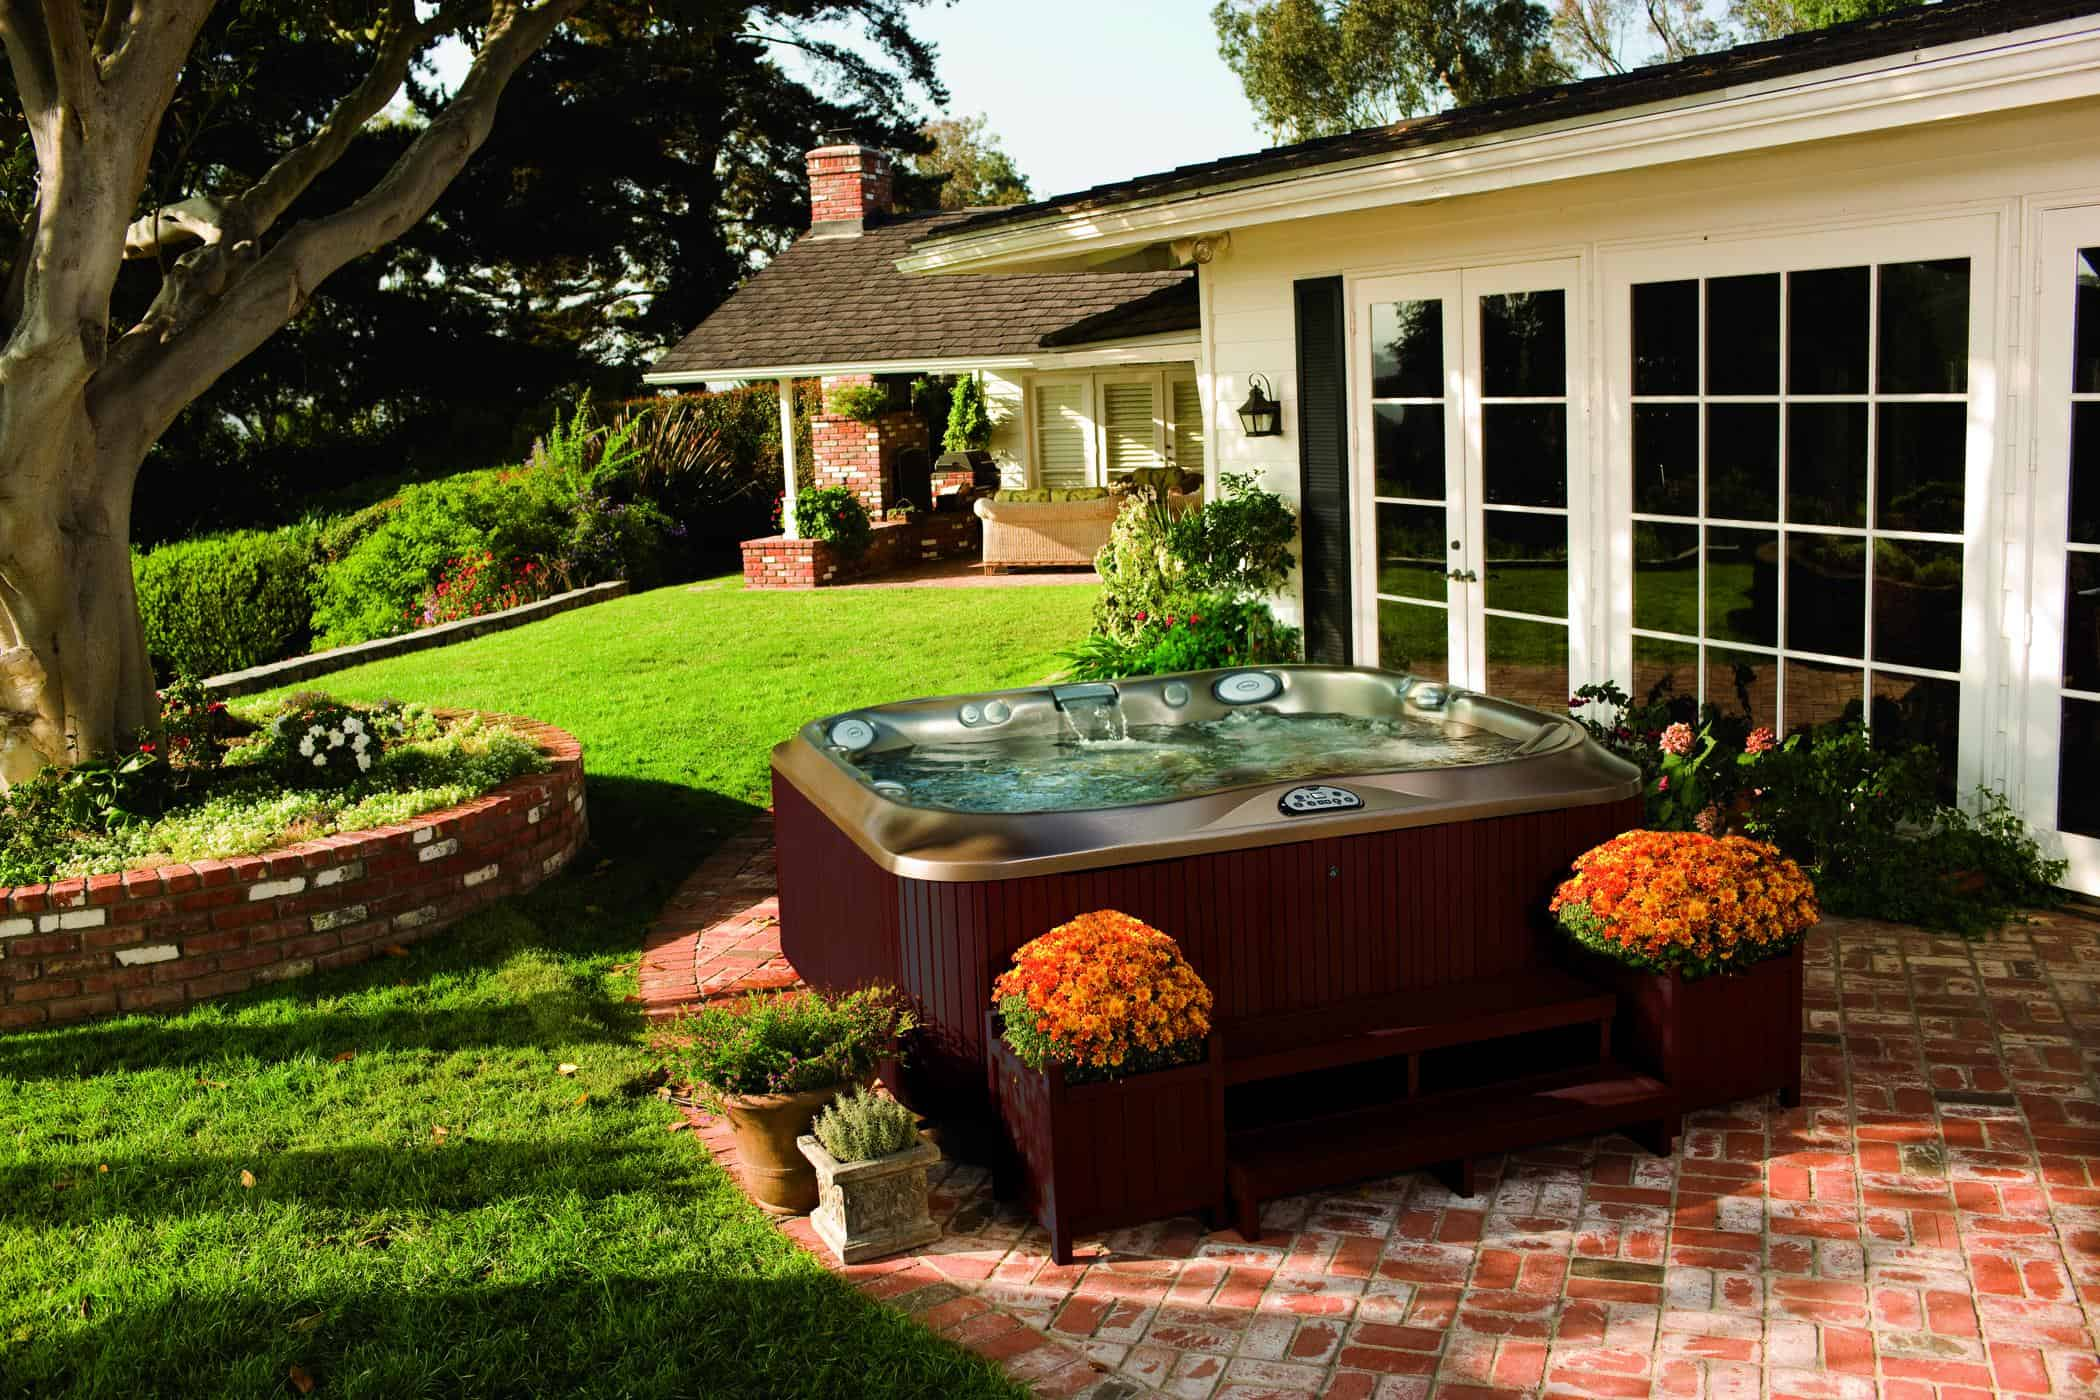 Backyard Safety for Hot Tubs and Swim Spas